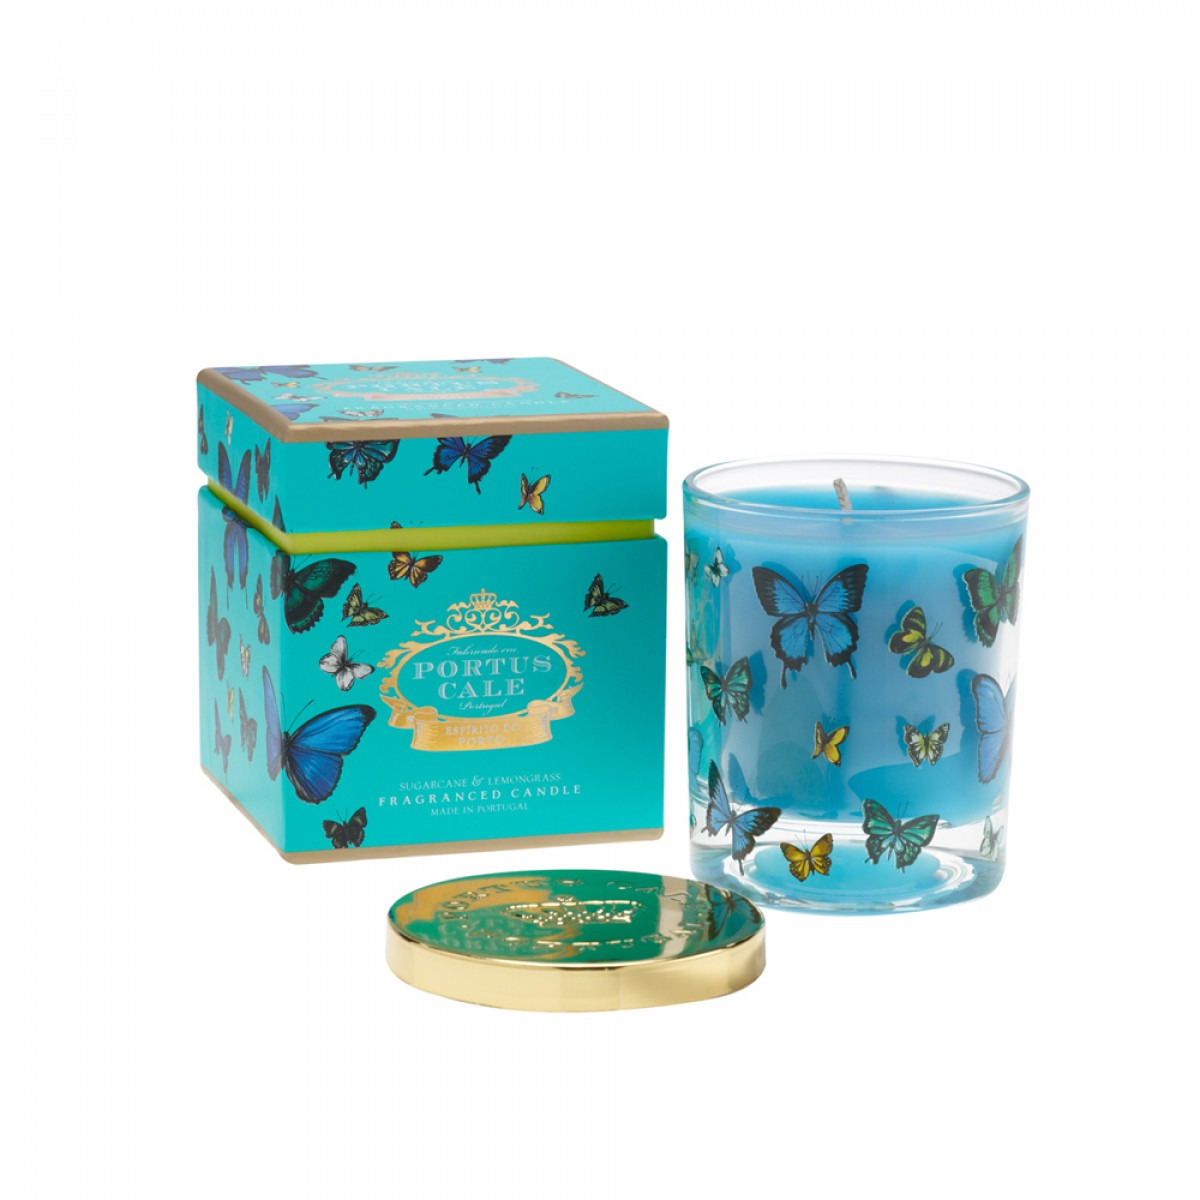 Portus Cale Candle 225g